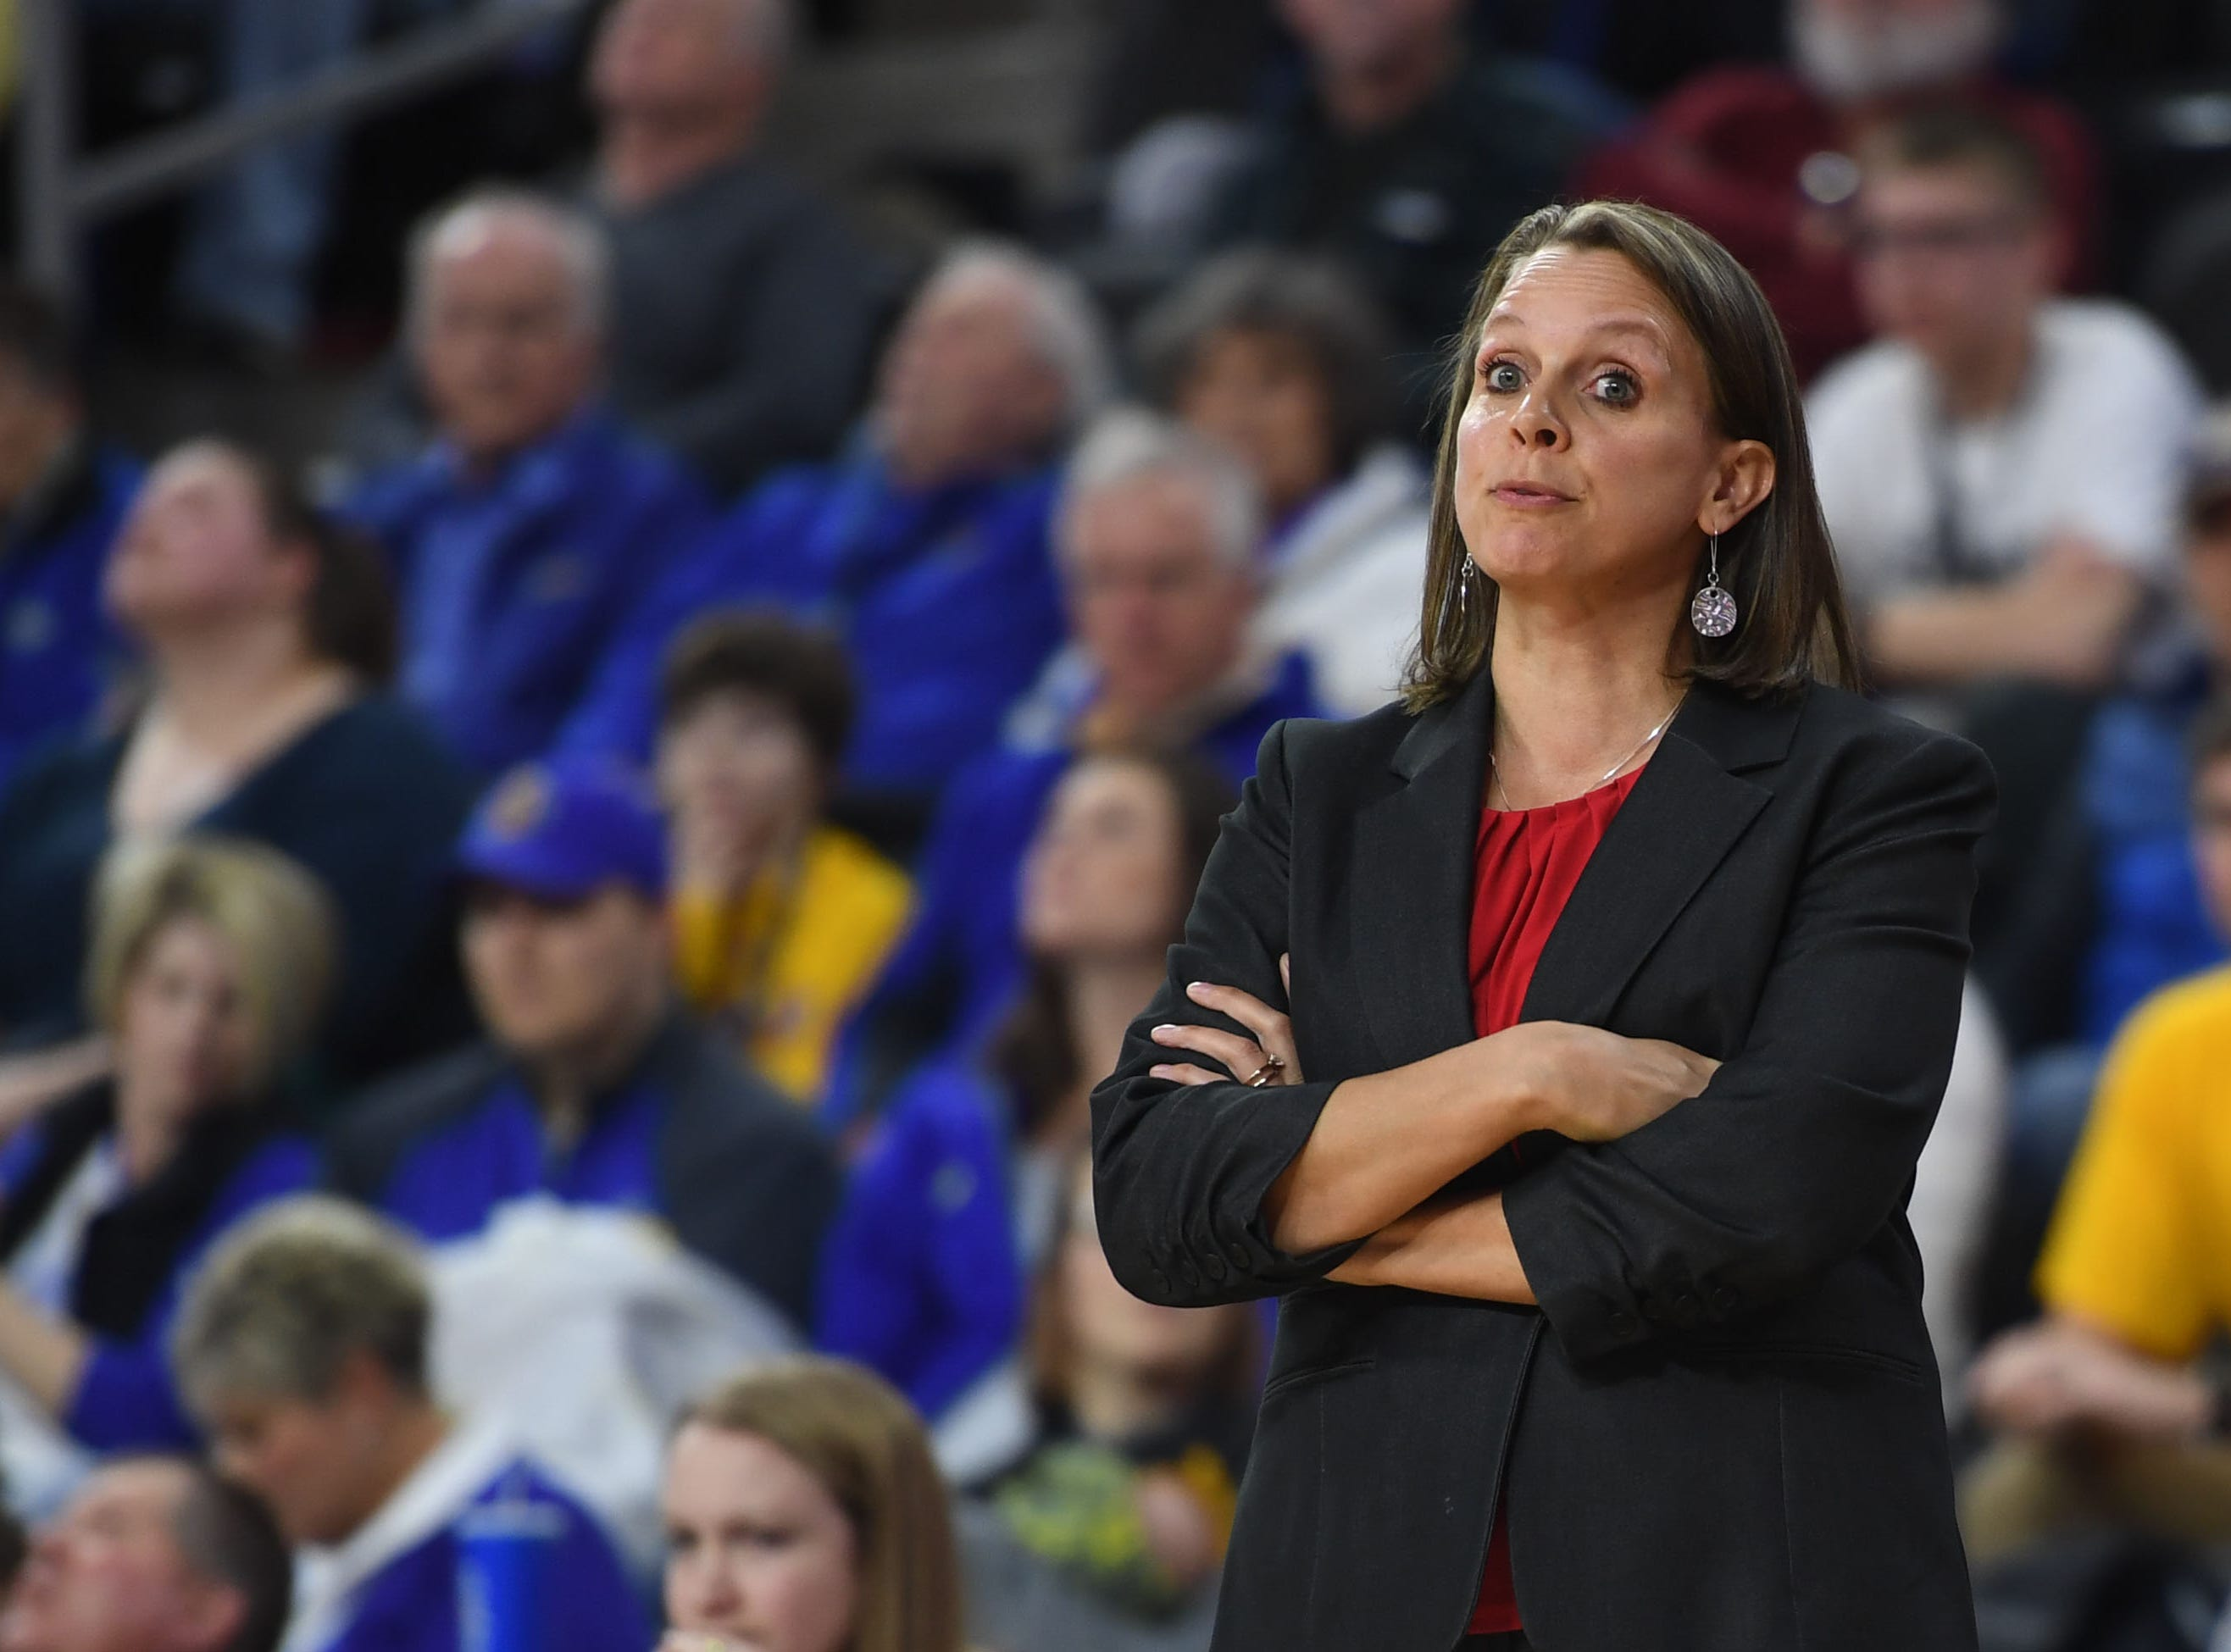 USD's head coach Dawn Plitzuweit during the game against SDSU Tuesday, March 12, in the Summit League women's championship at the Denny Sanford Premier Center in Sioux Falls.